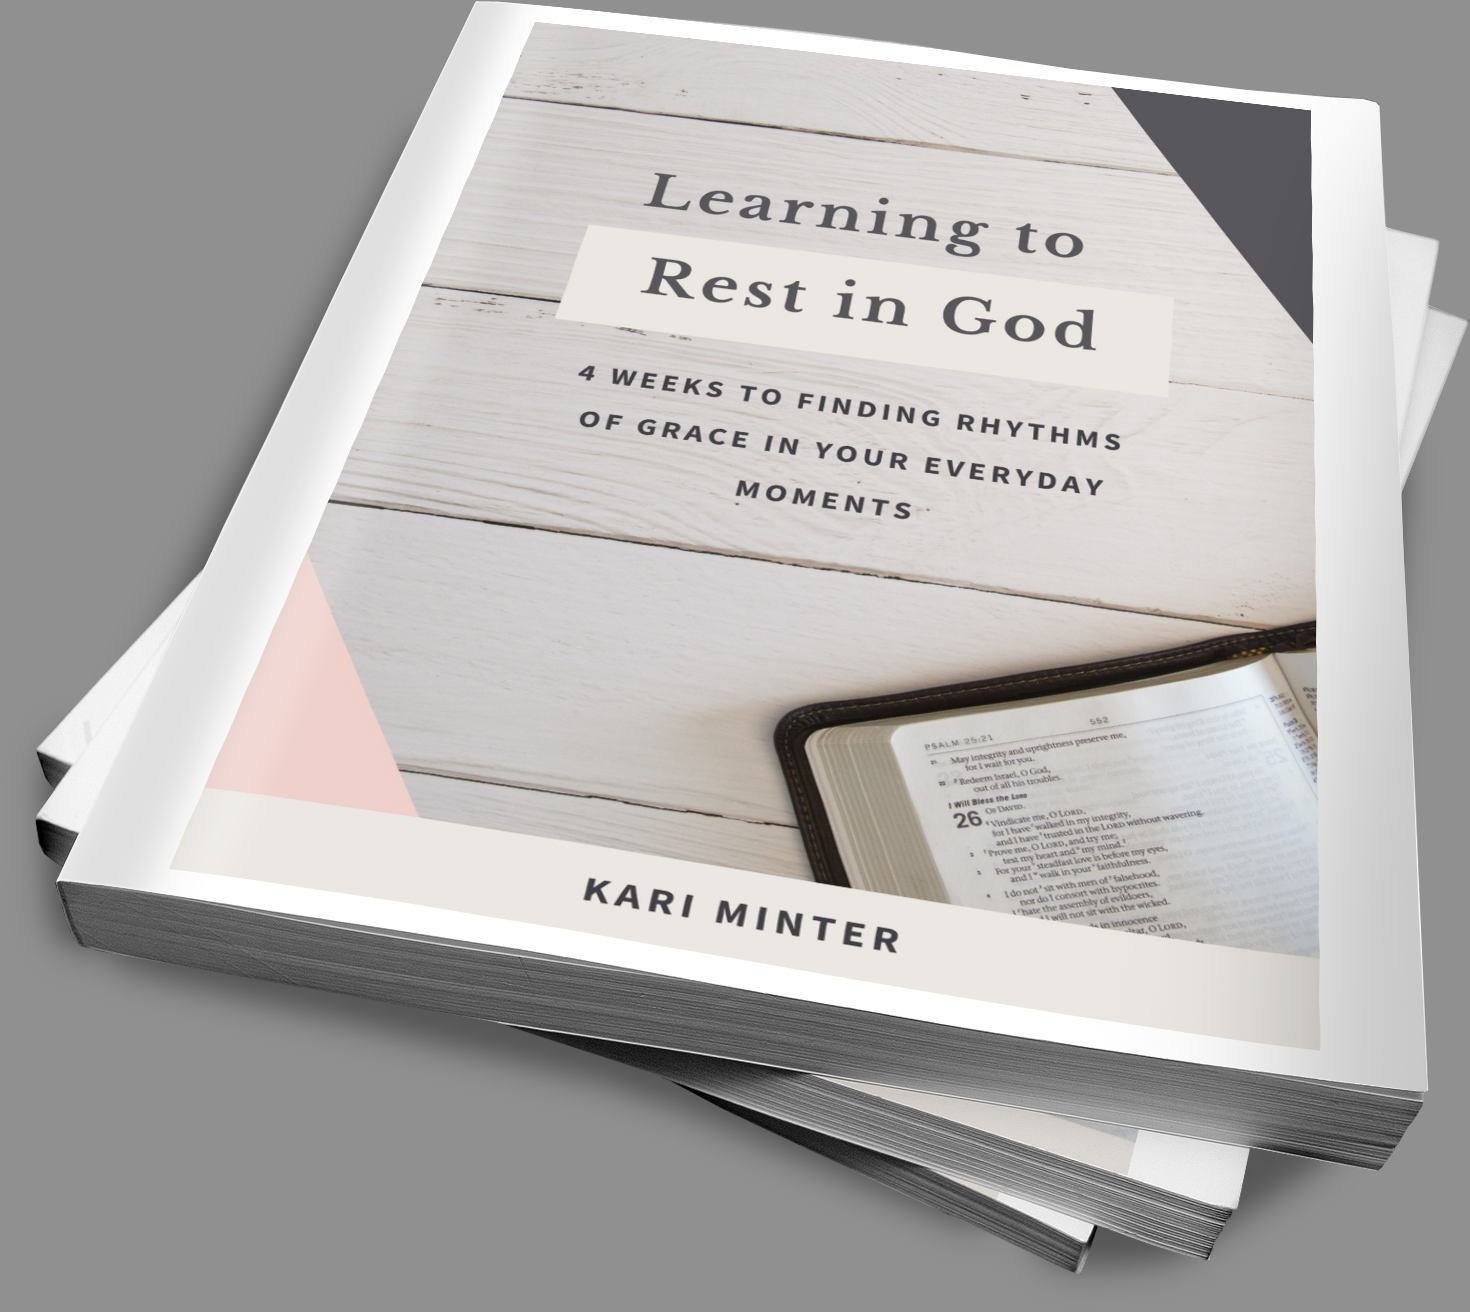 Book study rest in God